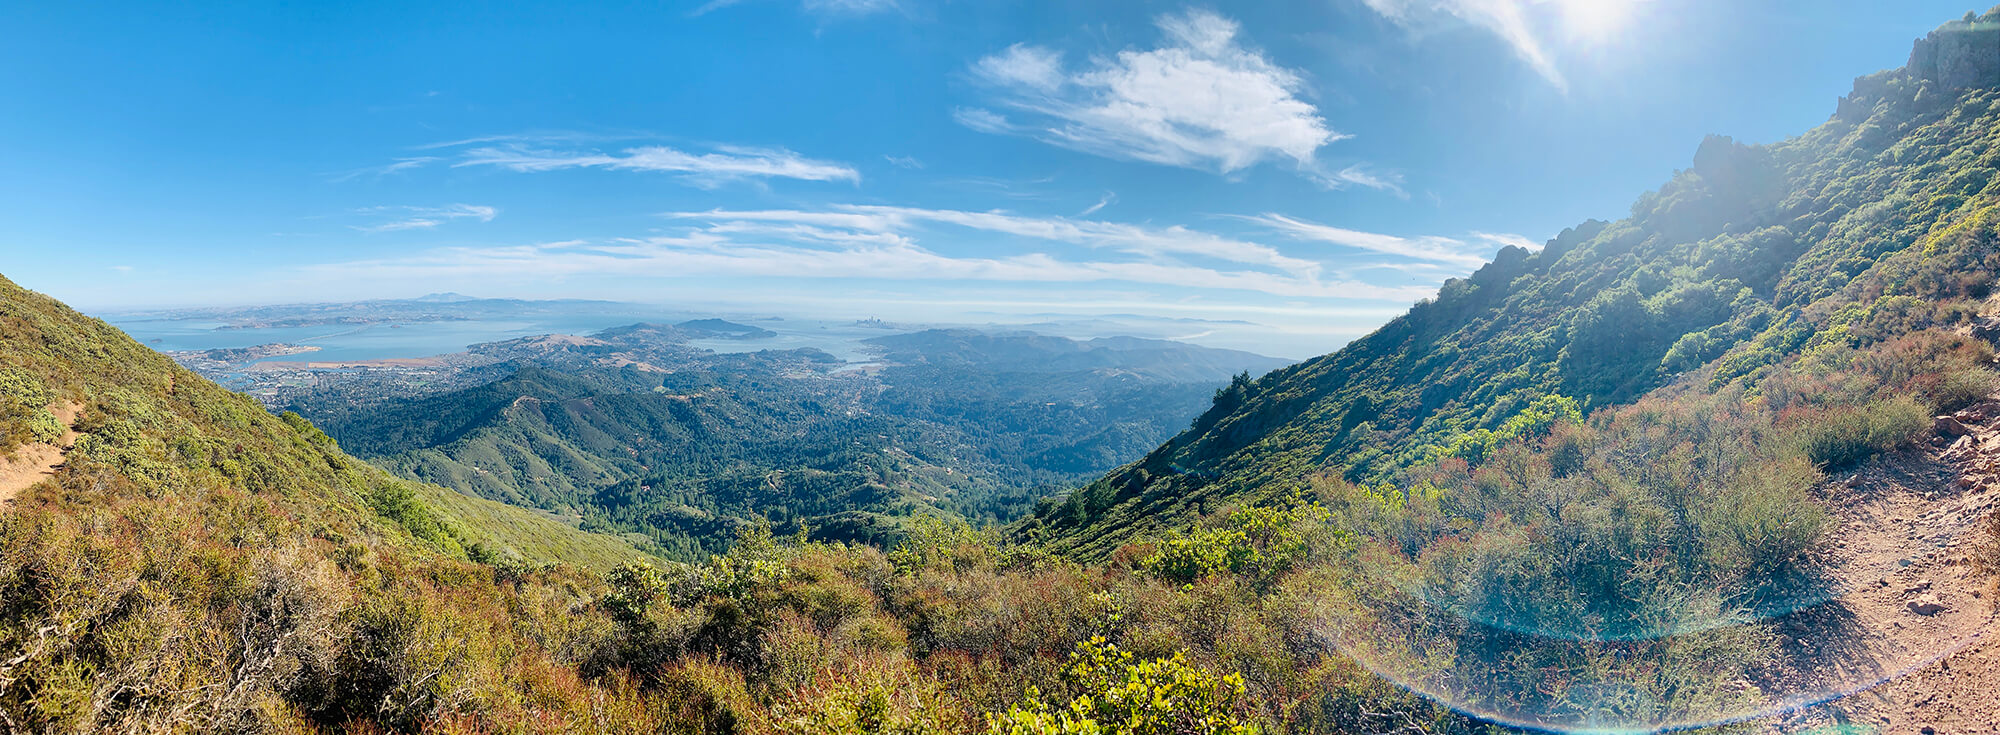 Panorama from the top of Mount Tamalpais